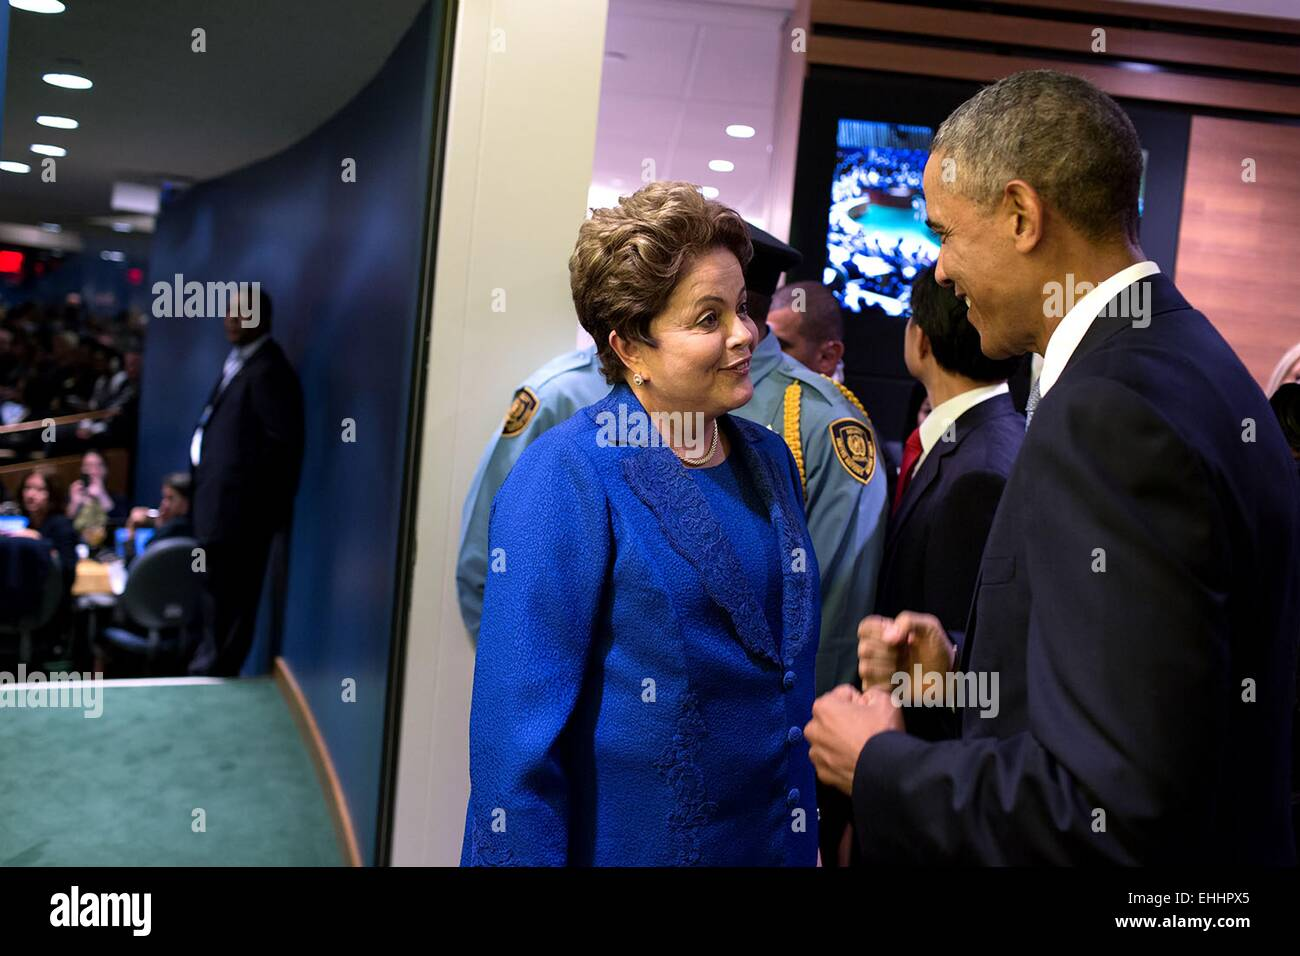 US President Barack Obama greets President Dilma Rousseff of Brazil at the United Nations, prior to addressing the - Stock Image